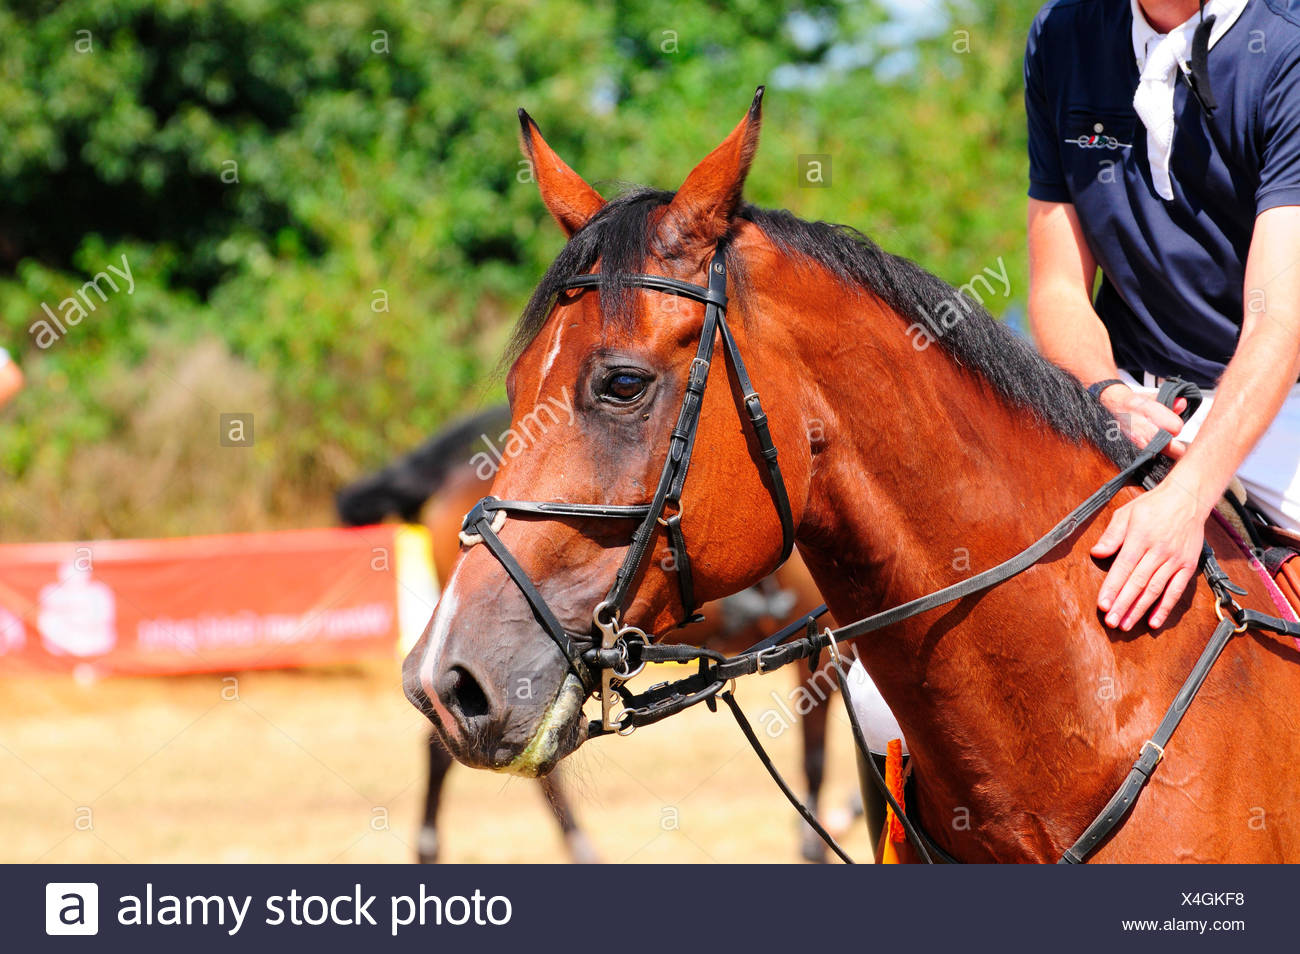 Equestrian Sports, rider, bridle, gear, tack - Stock Image